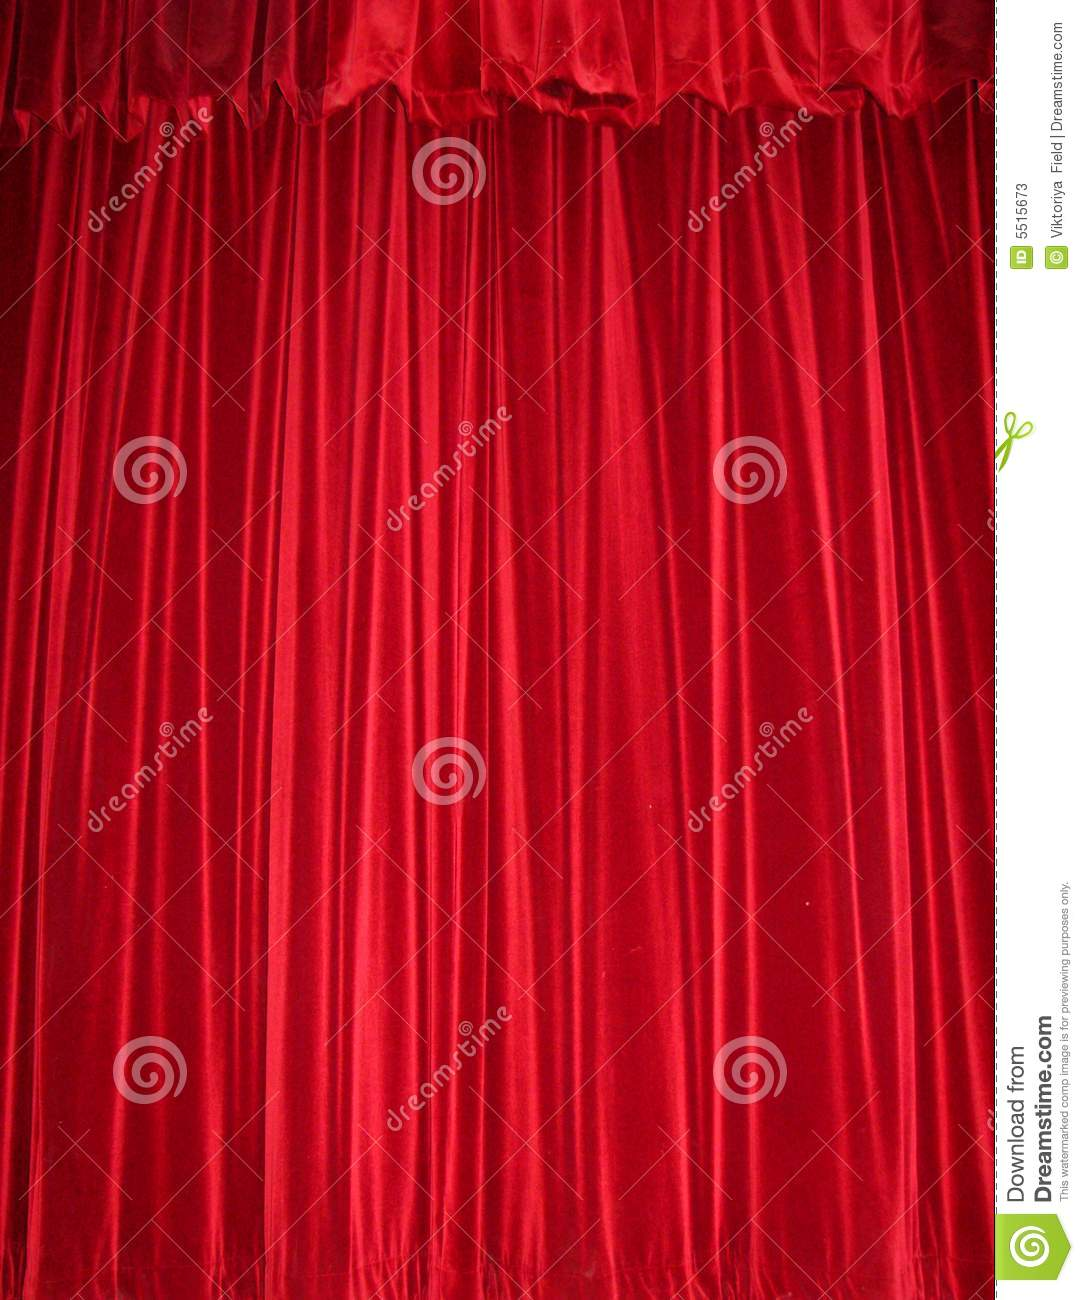 Red Velvet Curtain Stock Photos - Image: 5515673